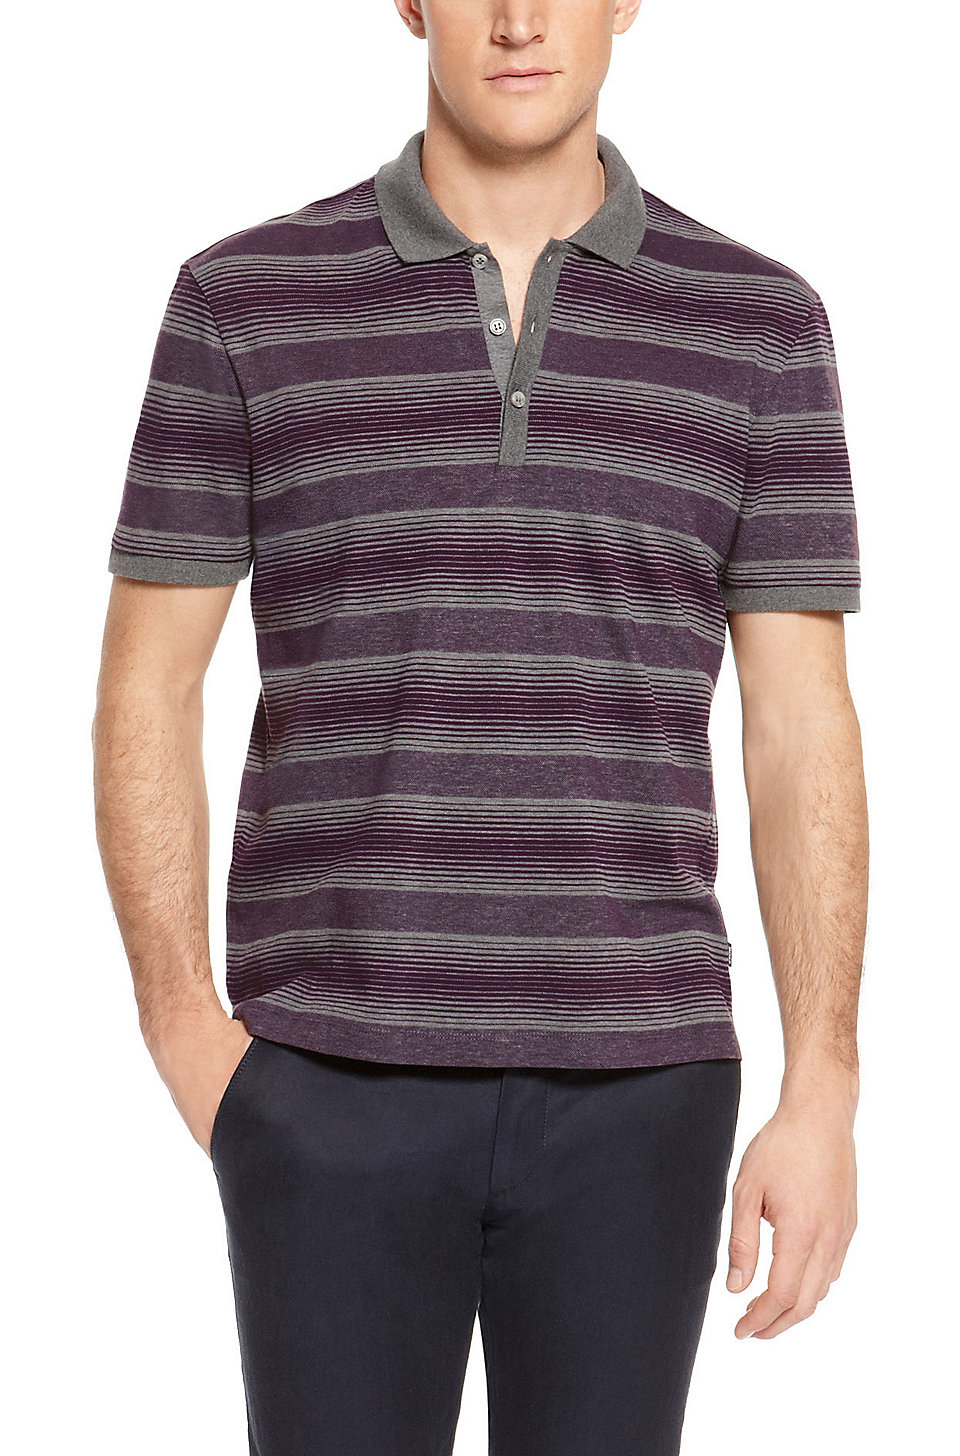 ed9bb147e Hugo Boss Firenze Polo Shirt | Kuenzi Turf & Nursery